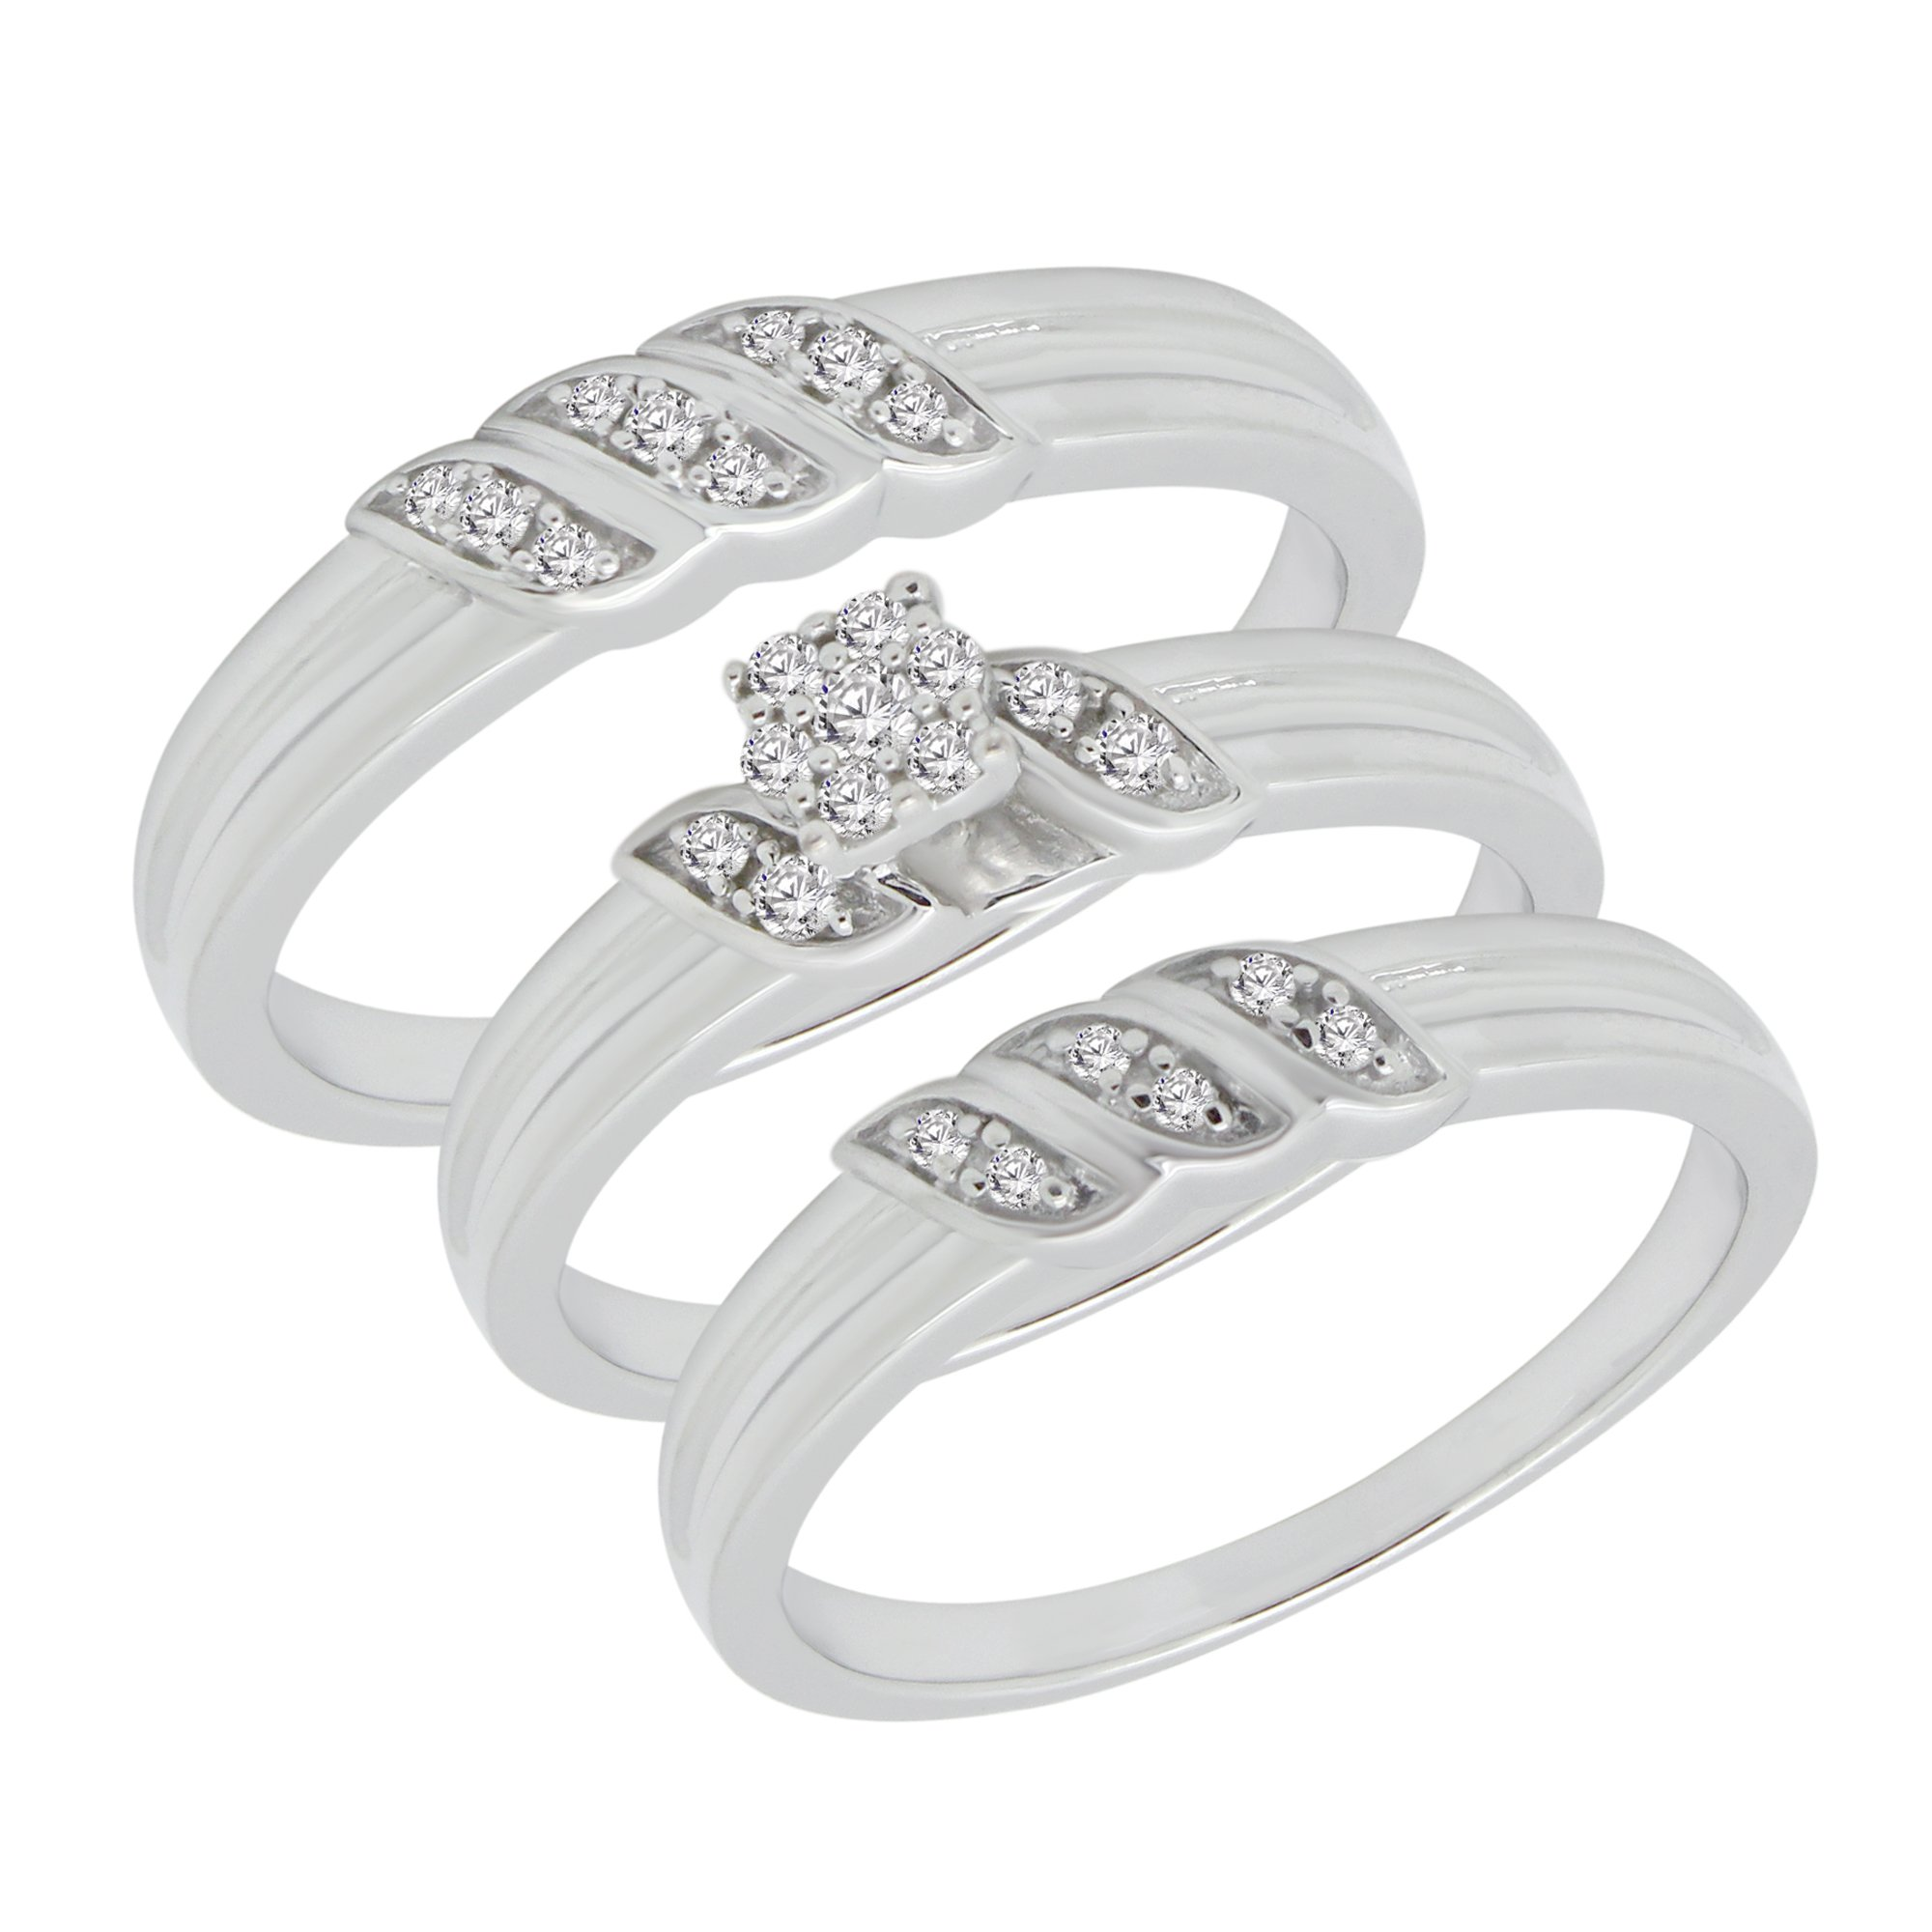 1/4 ct Real Diamond Engagement Ring & Wedding Band Ring Trio Set 925 Sterling Silver